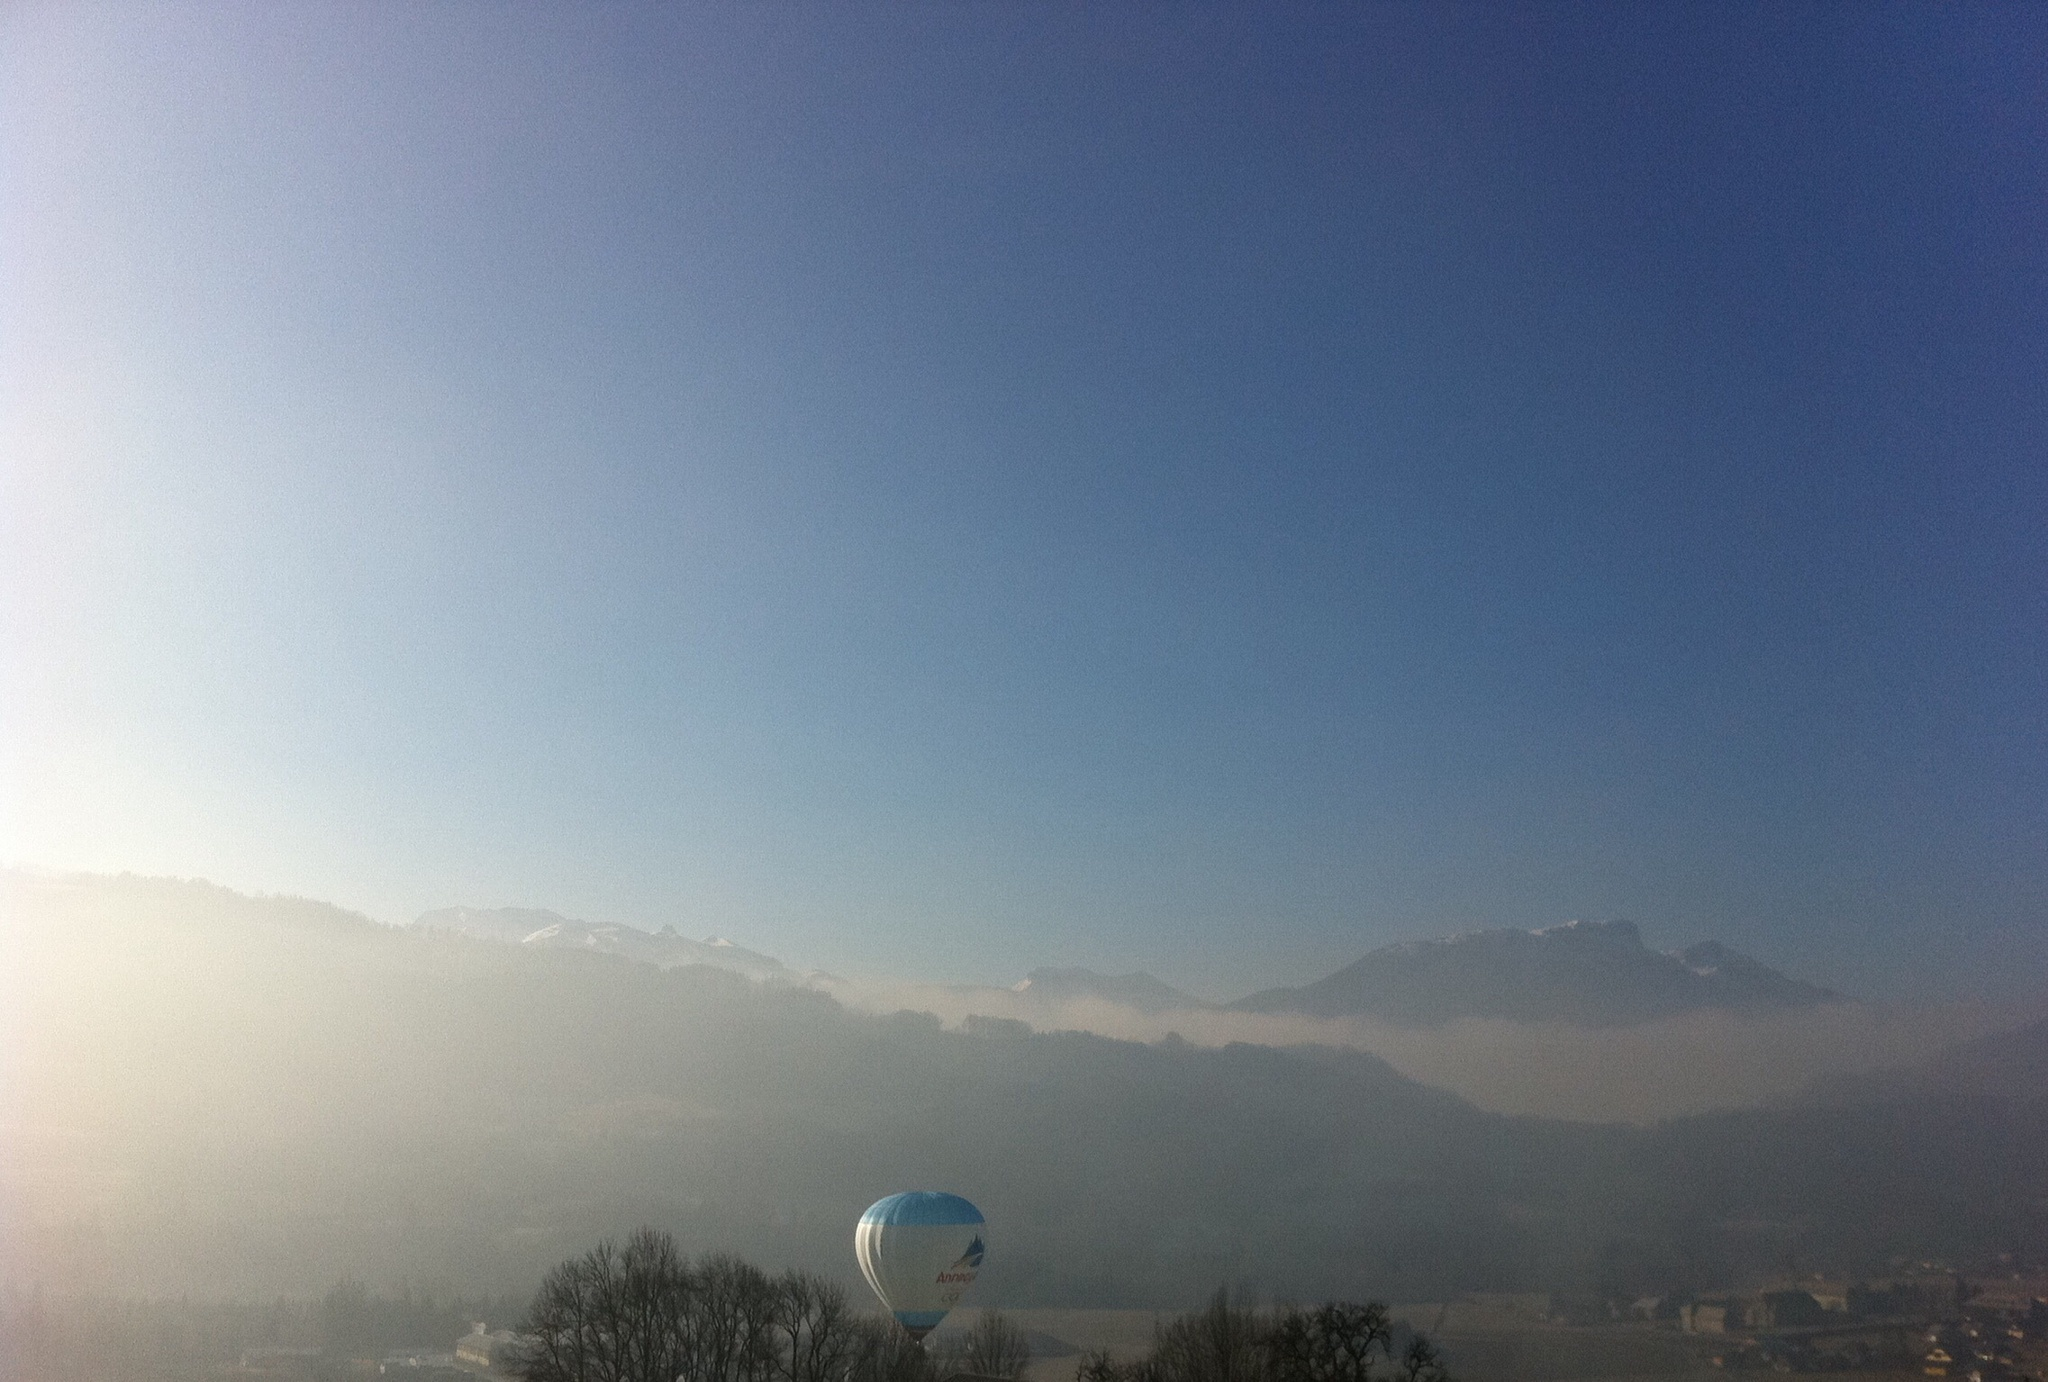 Ballooning in the sky of mountain by lallemand